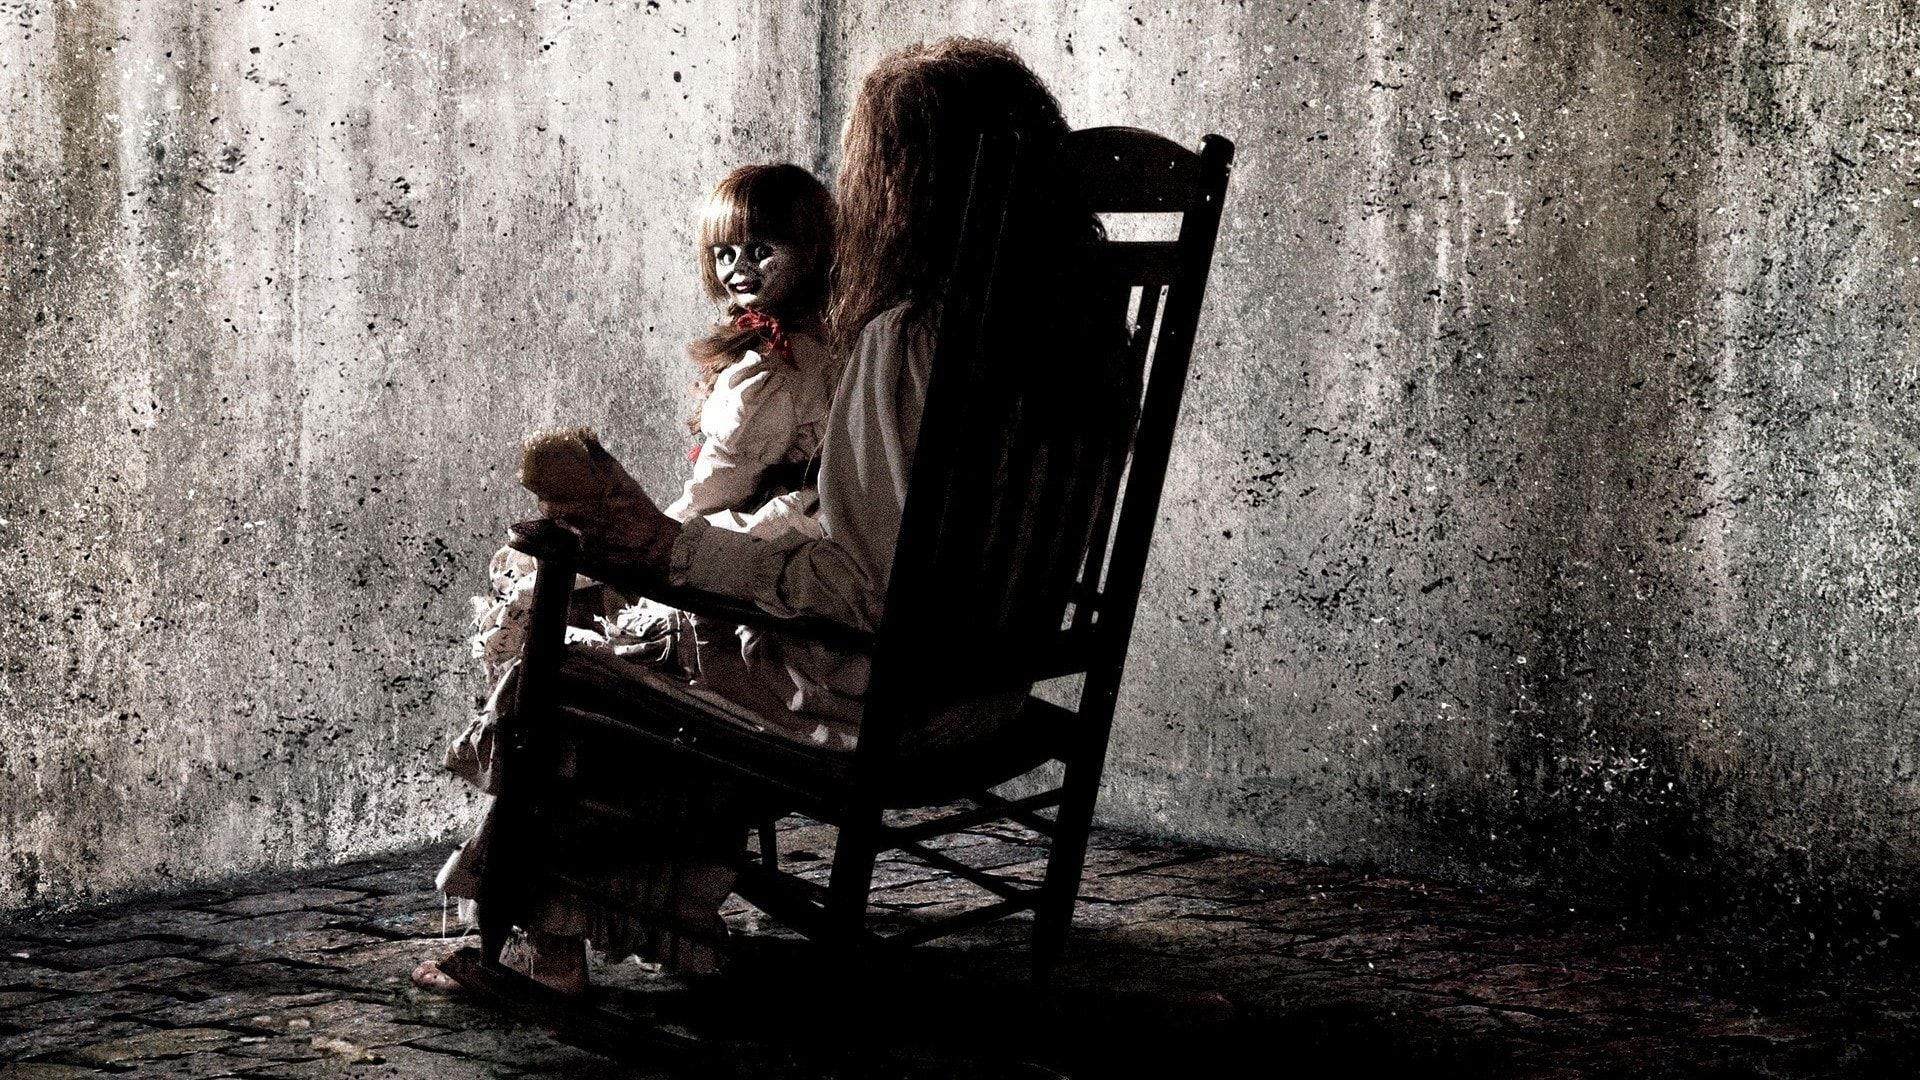 full hd 1080p annabelle wallpapers hd, desktop backgrounds | all